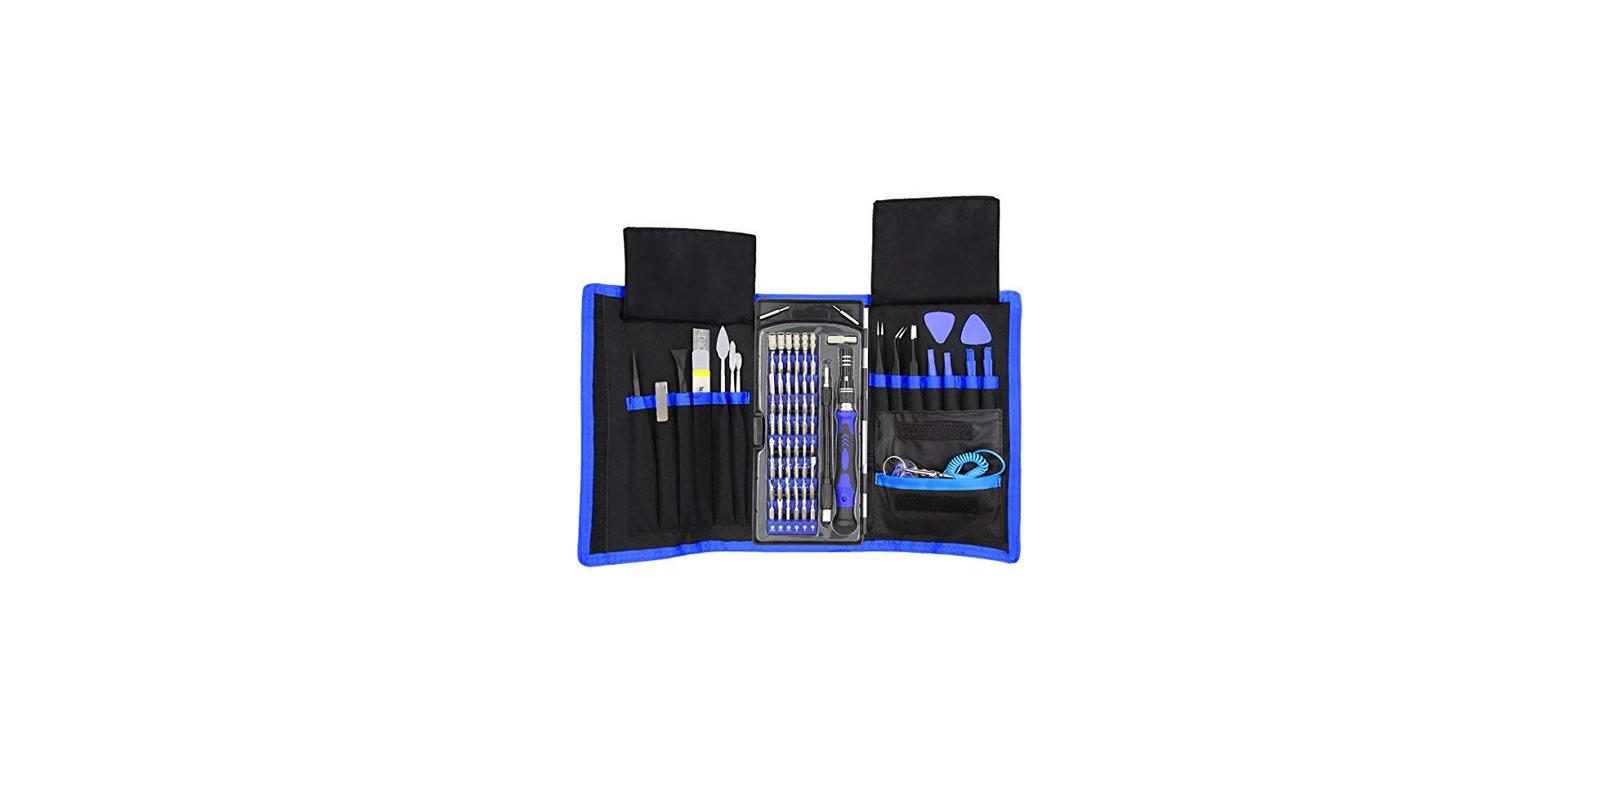 80 in 1 precision set with magnetic